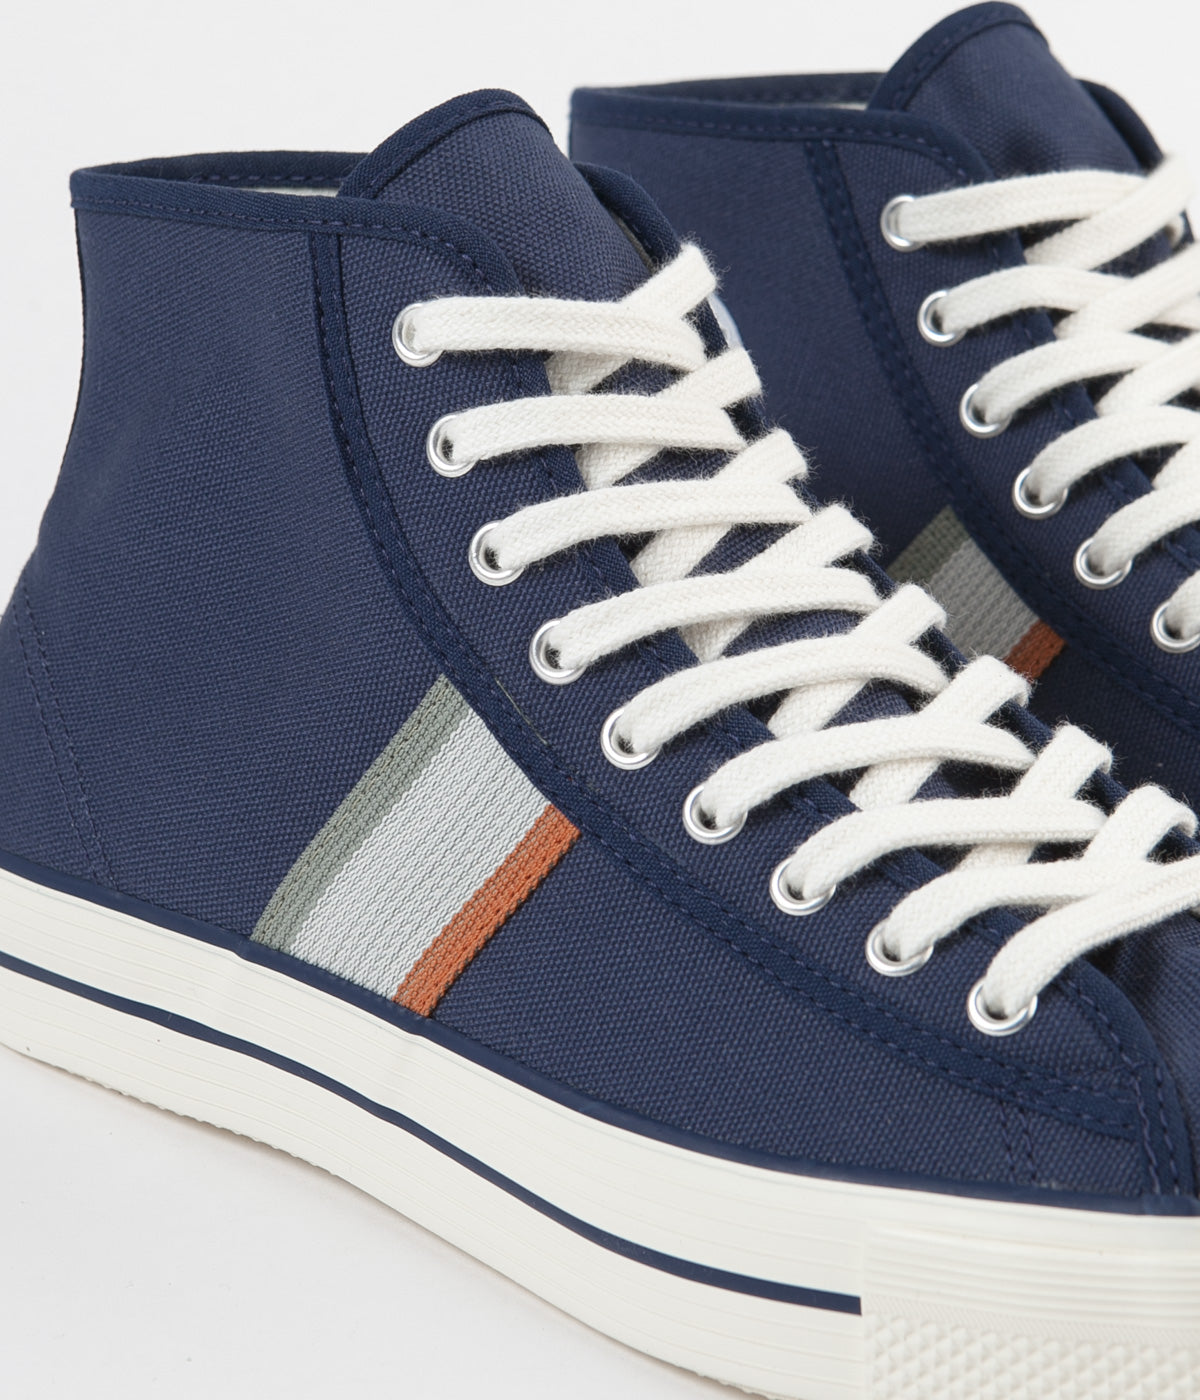 Converse Player LT Hi Shoes - Navy / Jade Stone / Egret ...